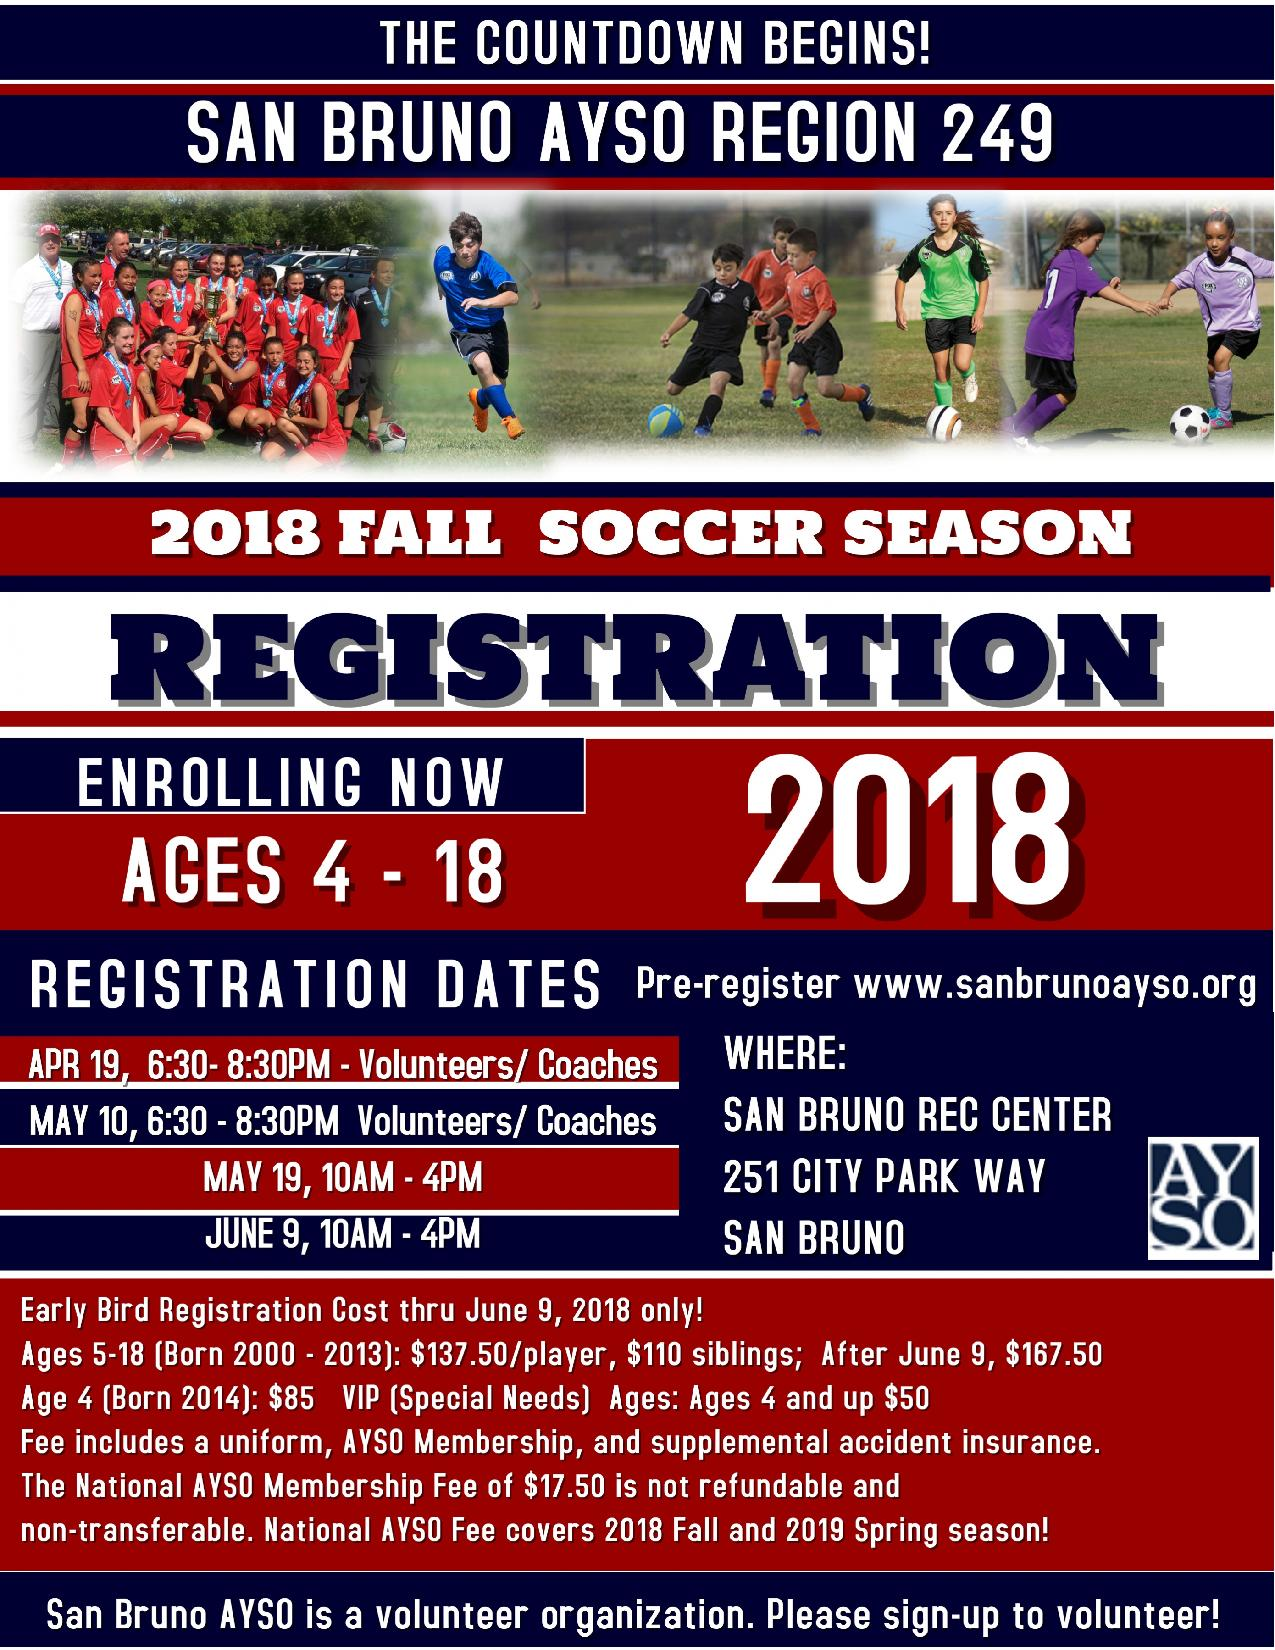 San Bruno AYSO Soccer Announces Fall 2018 Season Registration Starts April 19th